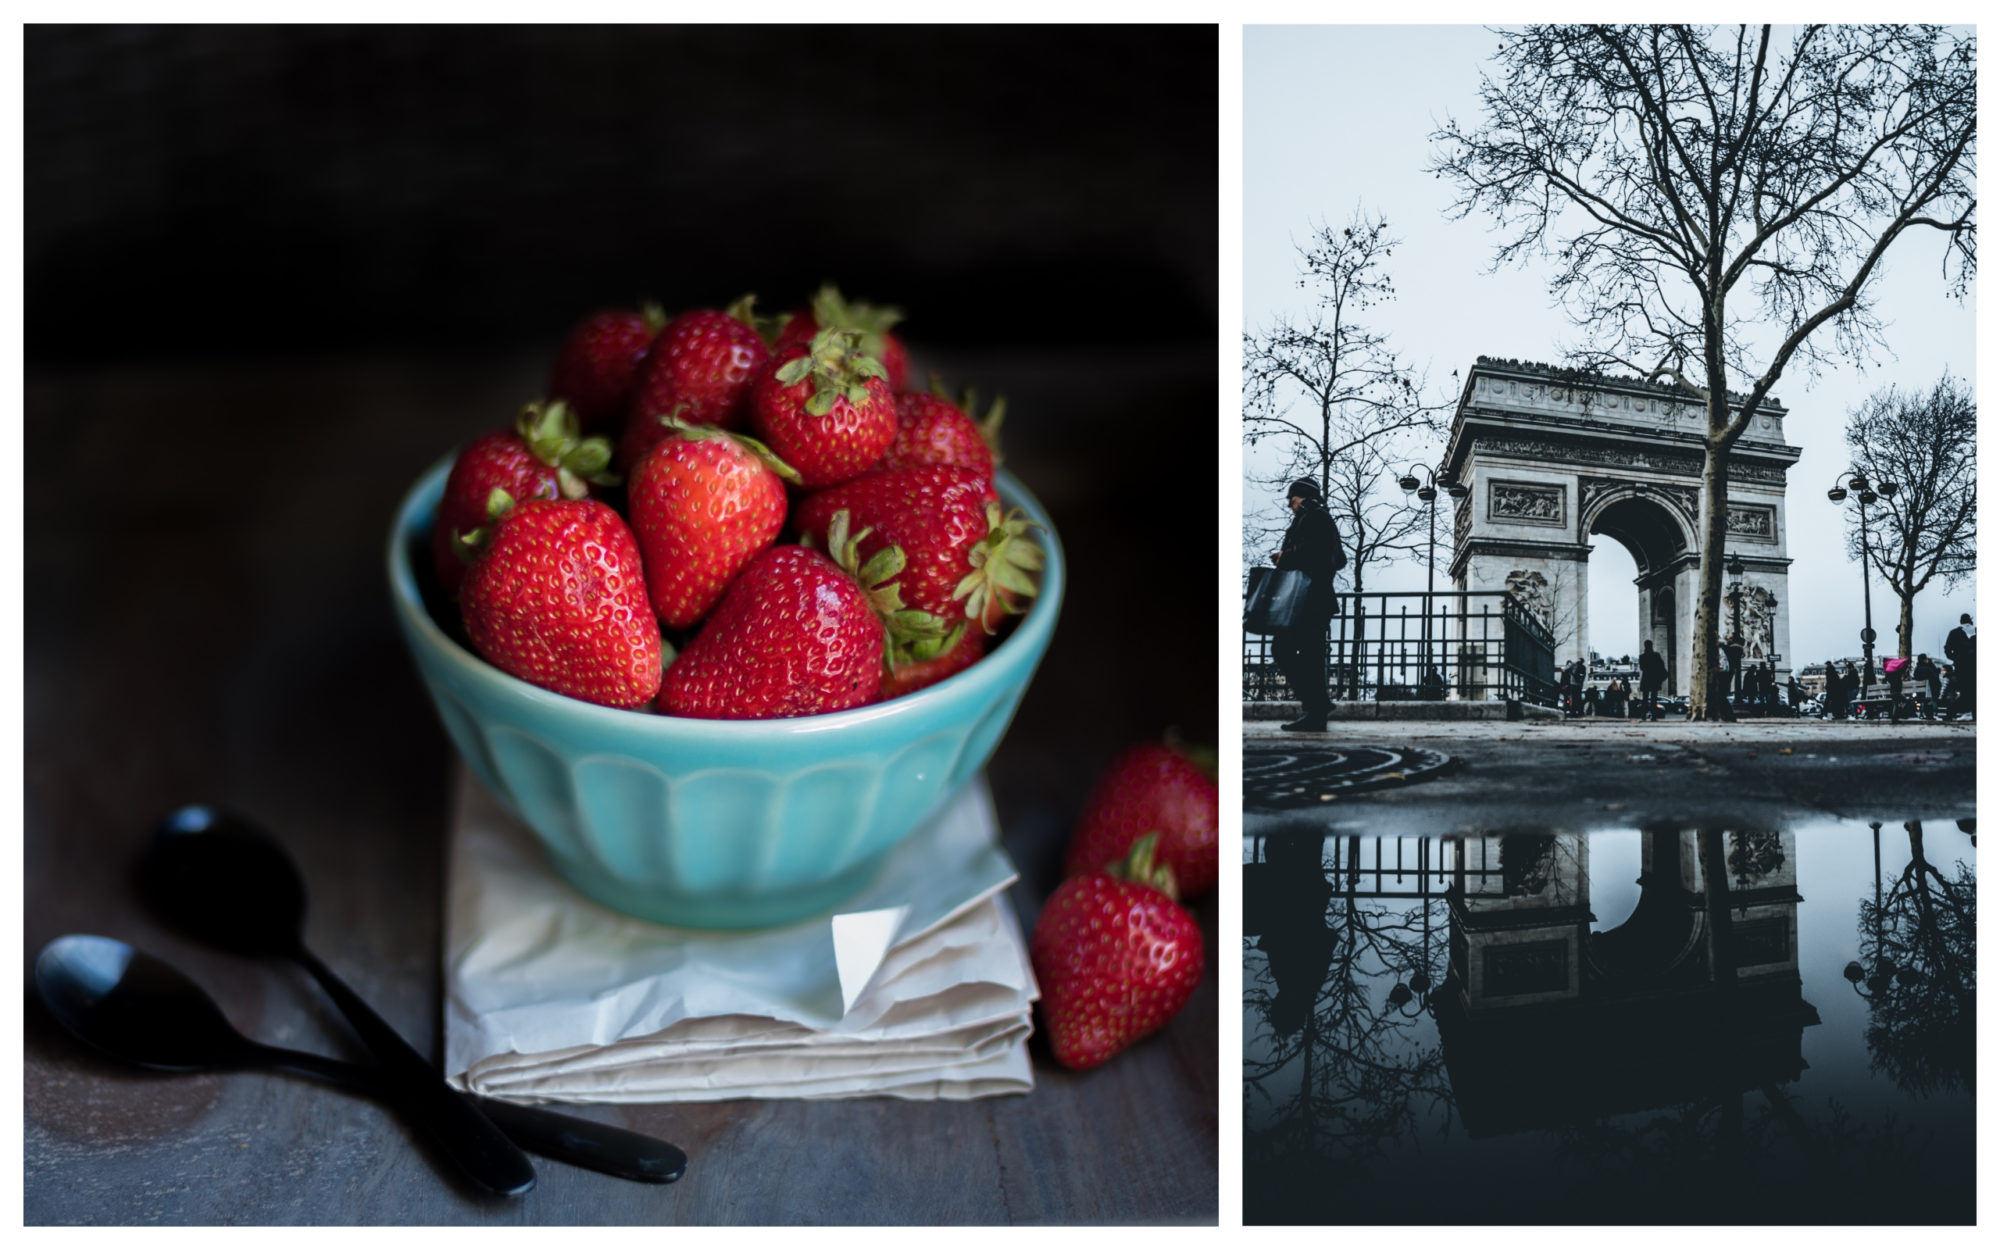 A blue bowl filled with red juicy strawberries, the perfect snack for summer in Paris (left). The Arc de Triomphe in Paris (right).